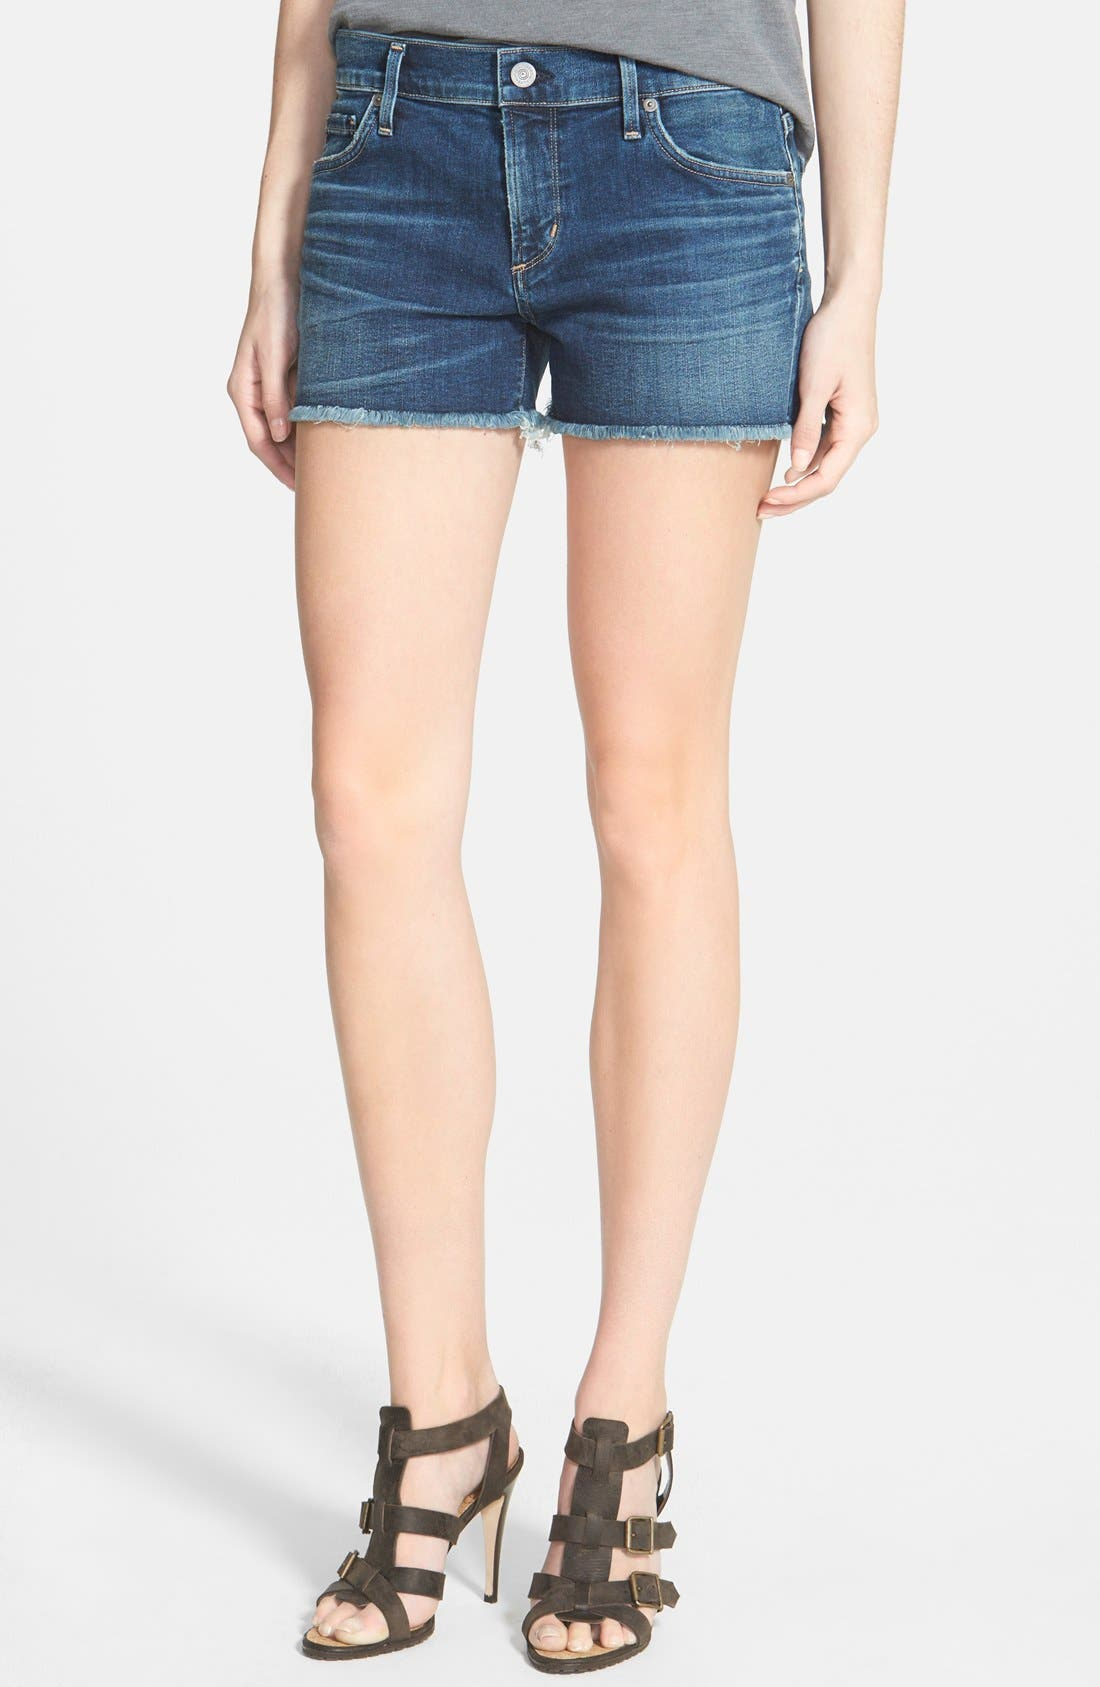 Alternate Image 1 Selected - Citizens of Humanity 'Ava' Frayed Denim Shorts